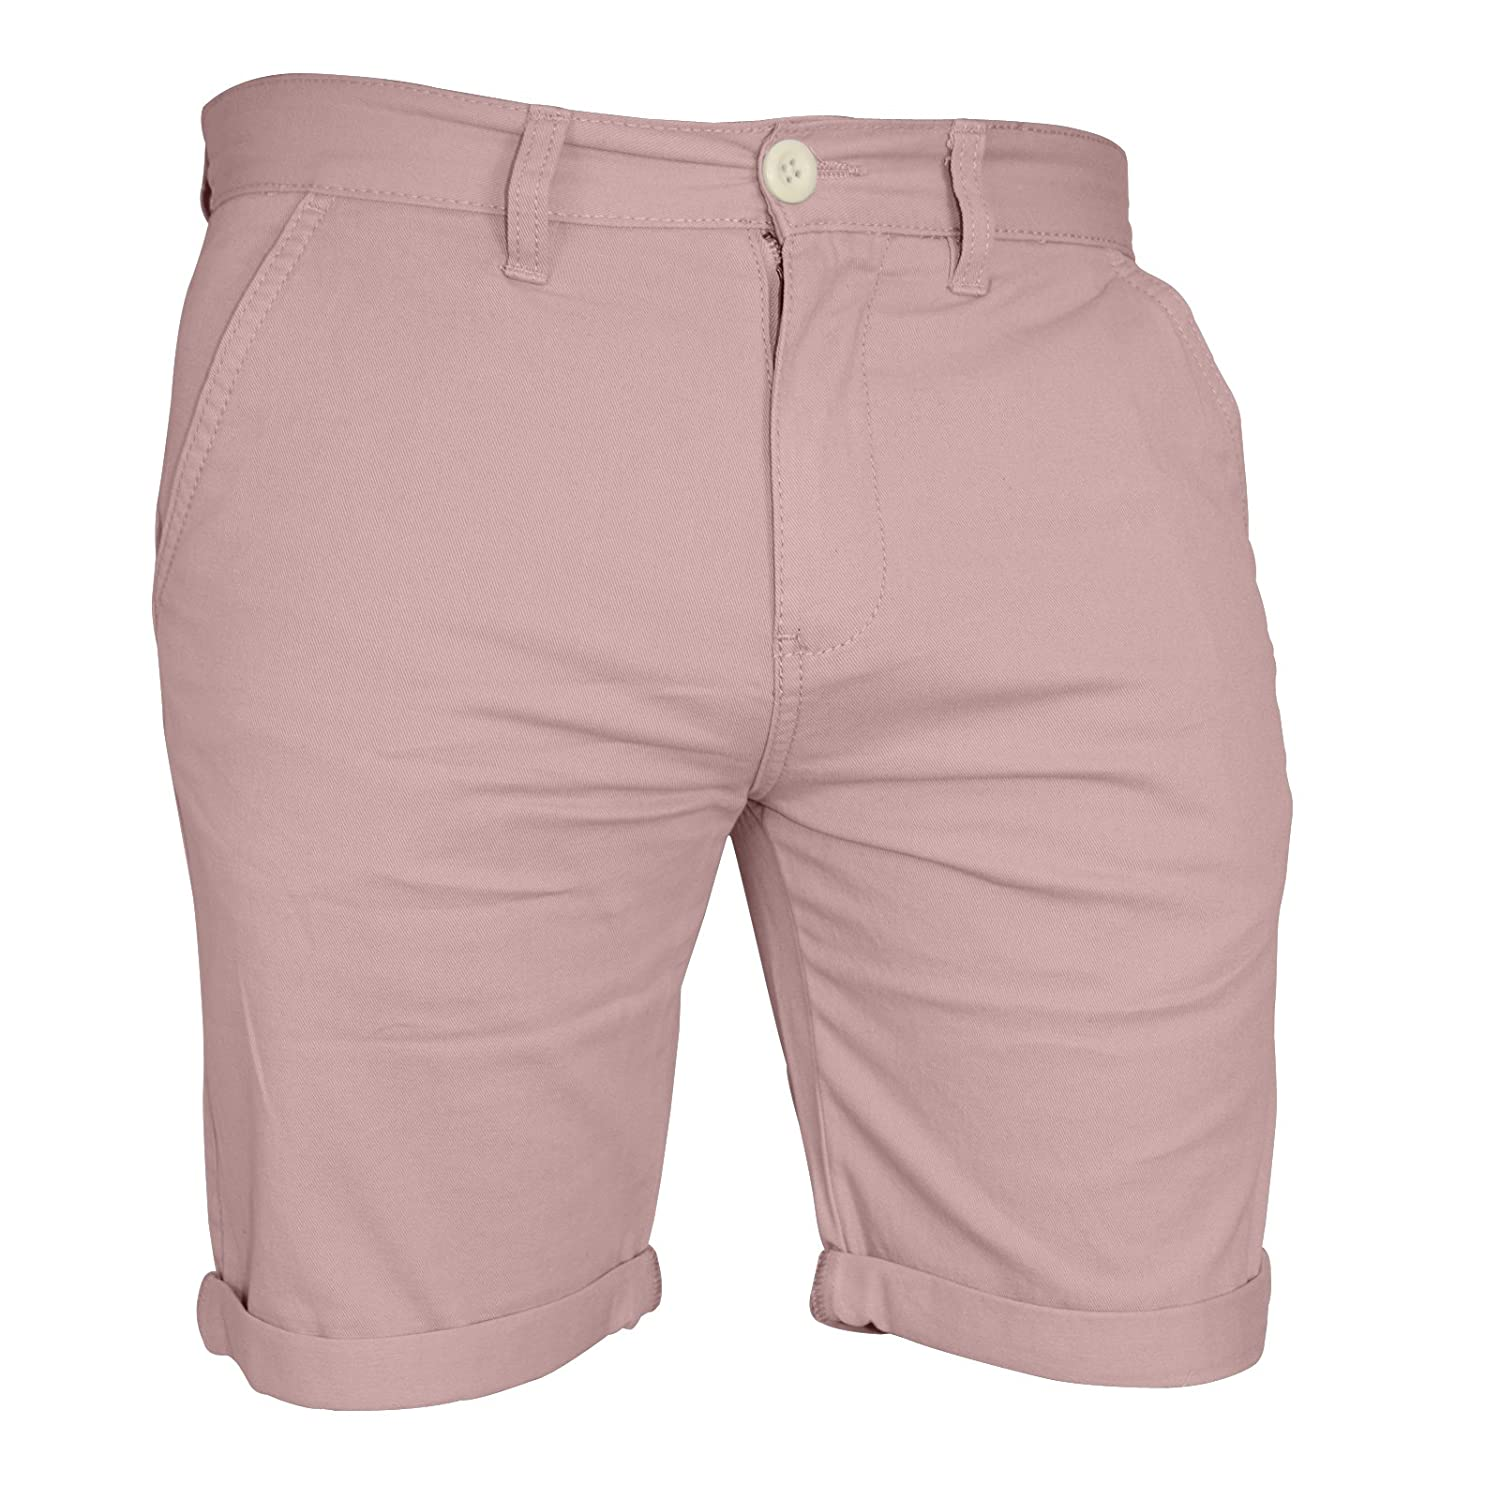 a953e29343 100% Cotton Imported Zipper closure. Mens Chino Turn Up Shorts Slim Fit  Flat-Front Half Pant that's clean-cut and versatile enough for the weekend,  holiday, ...